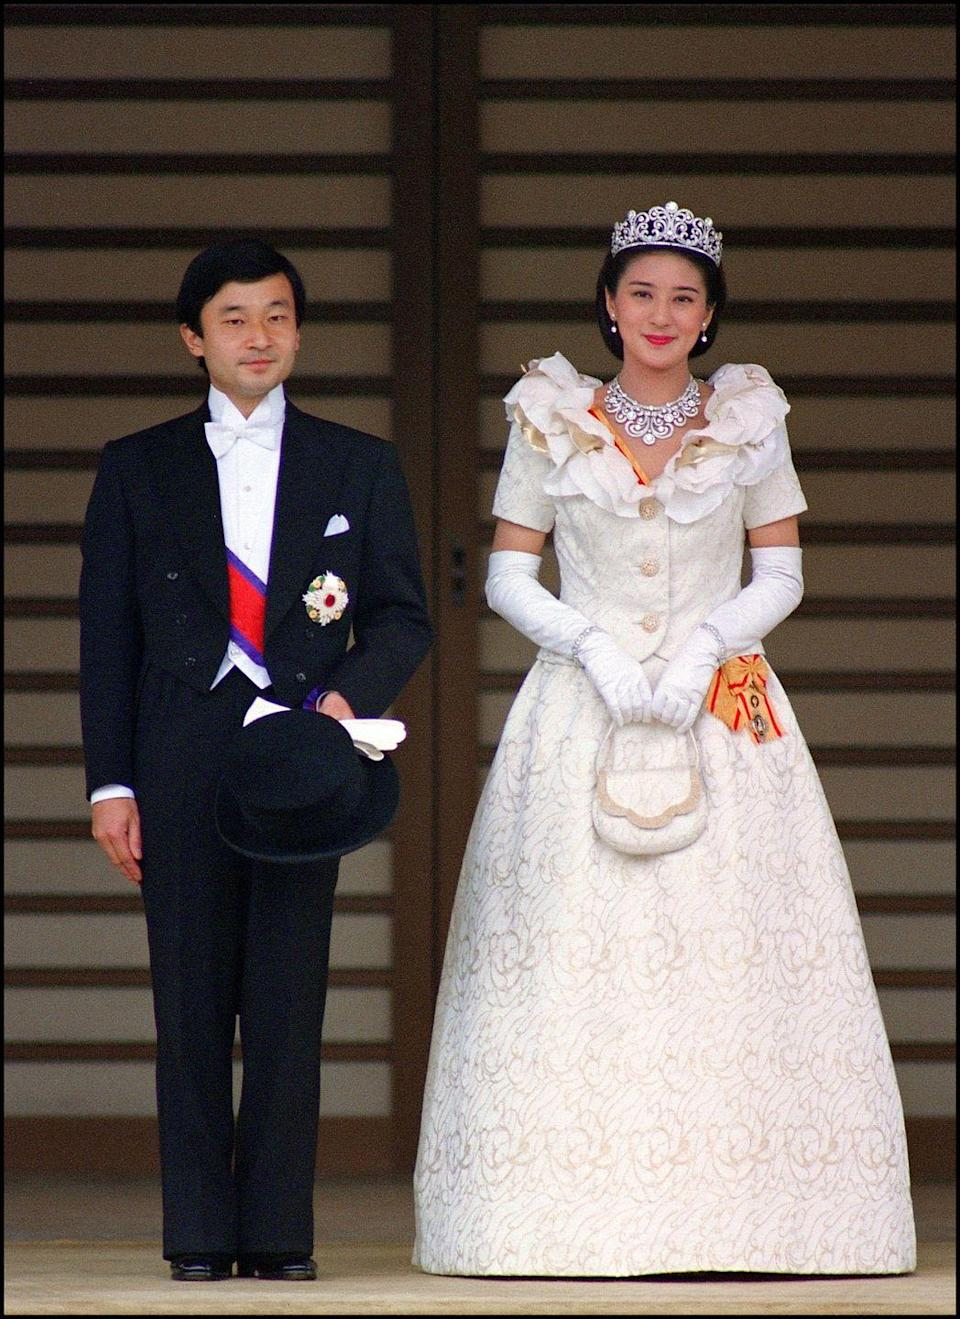 <p>Princess Masako of Japan wore an ivory gown with a large, ruffled neckline on her wedding day. She and Prince Naruhito held their wedding at the Shinto shrine of Amaterasu, the Sun Goddess, on the grounds of the Imperial Palace in Tokyo, Japan on June 9, 1993.</p>